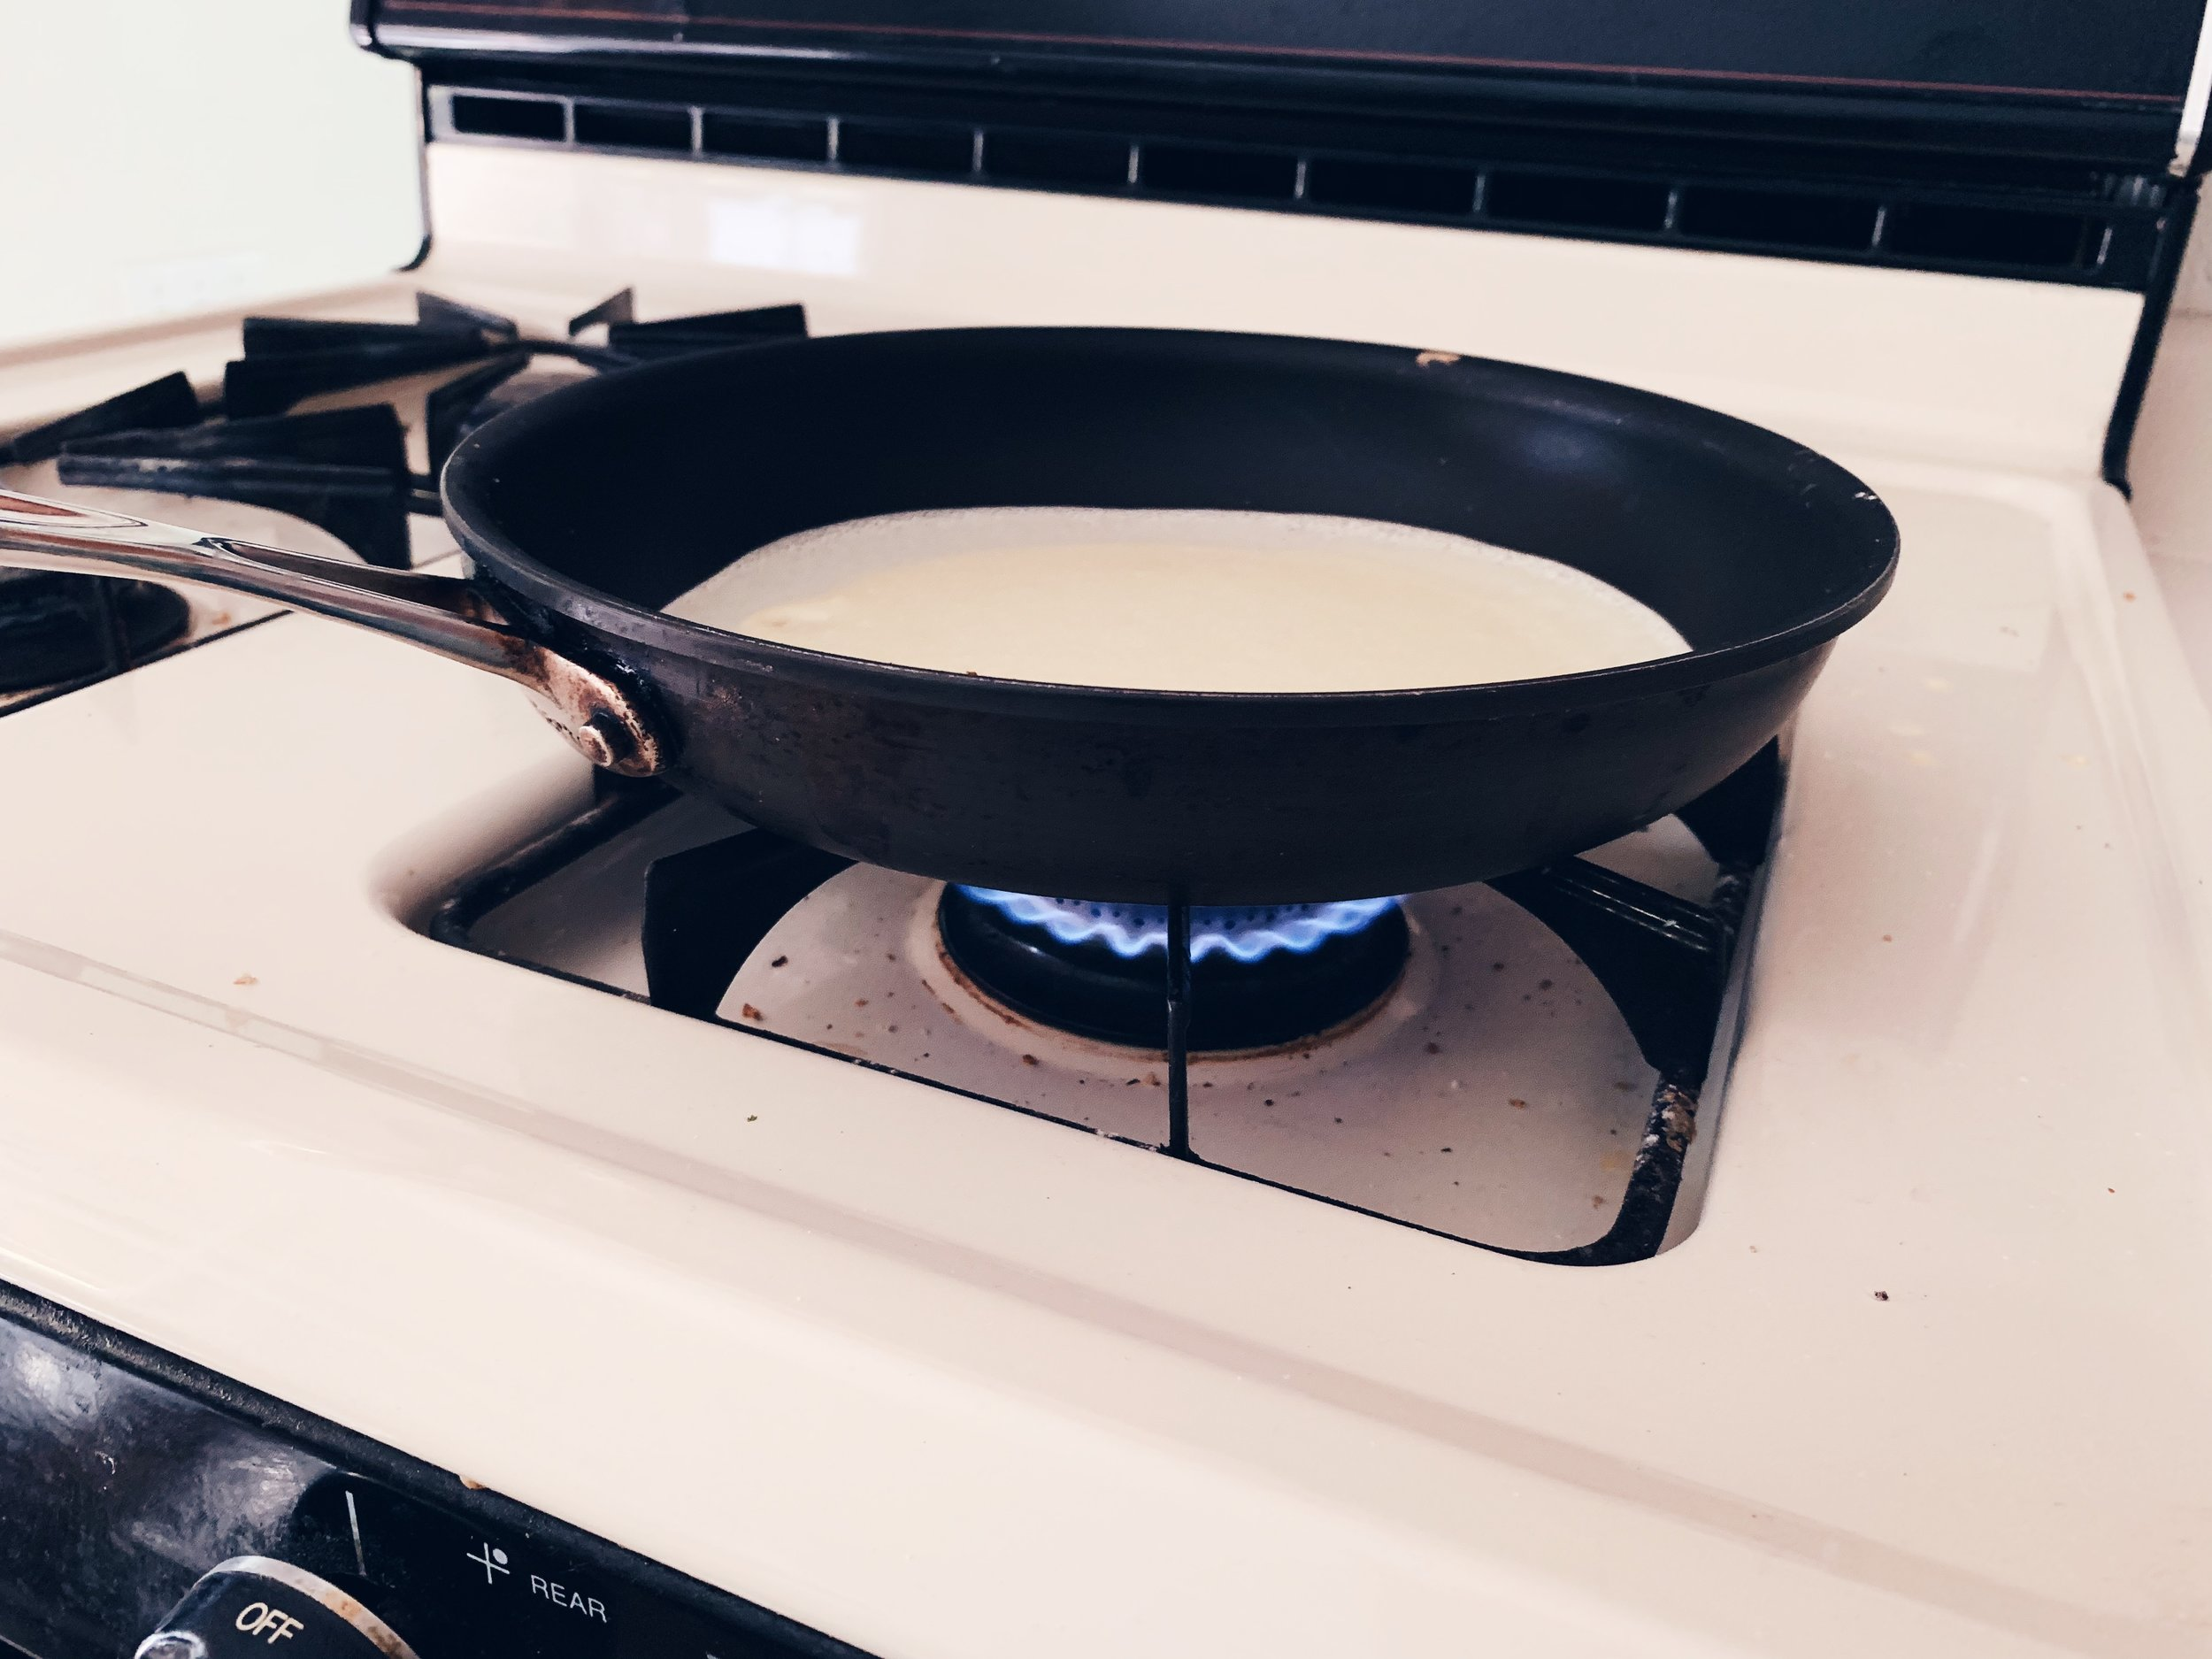 Here's what the heat looks like on a gas stove.